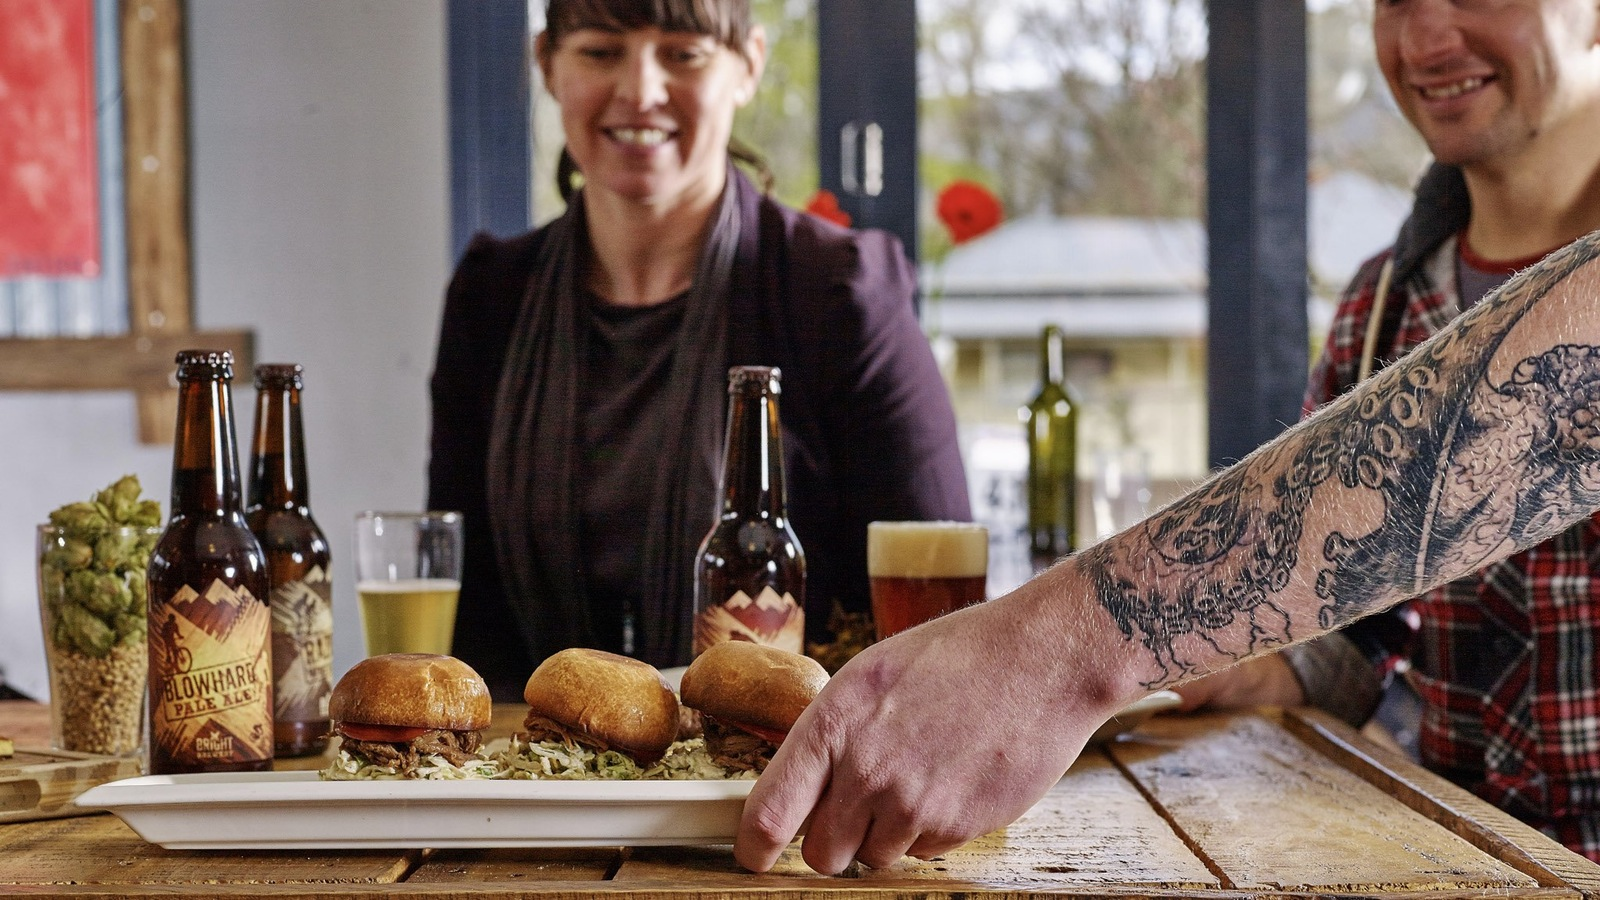 Sliders and beers for lunch at Bright Brewery